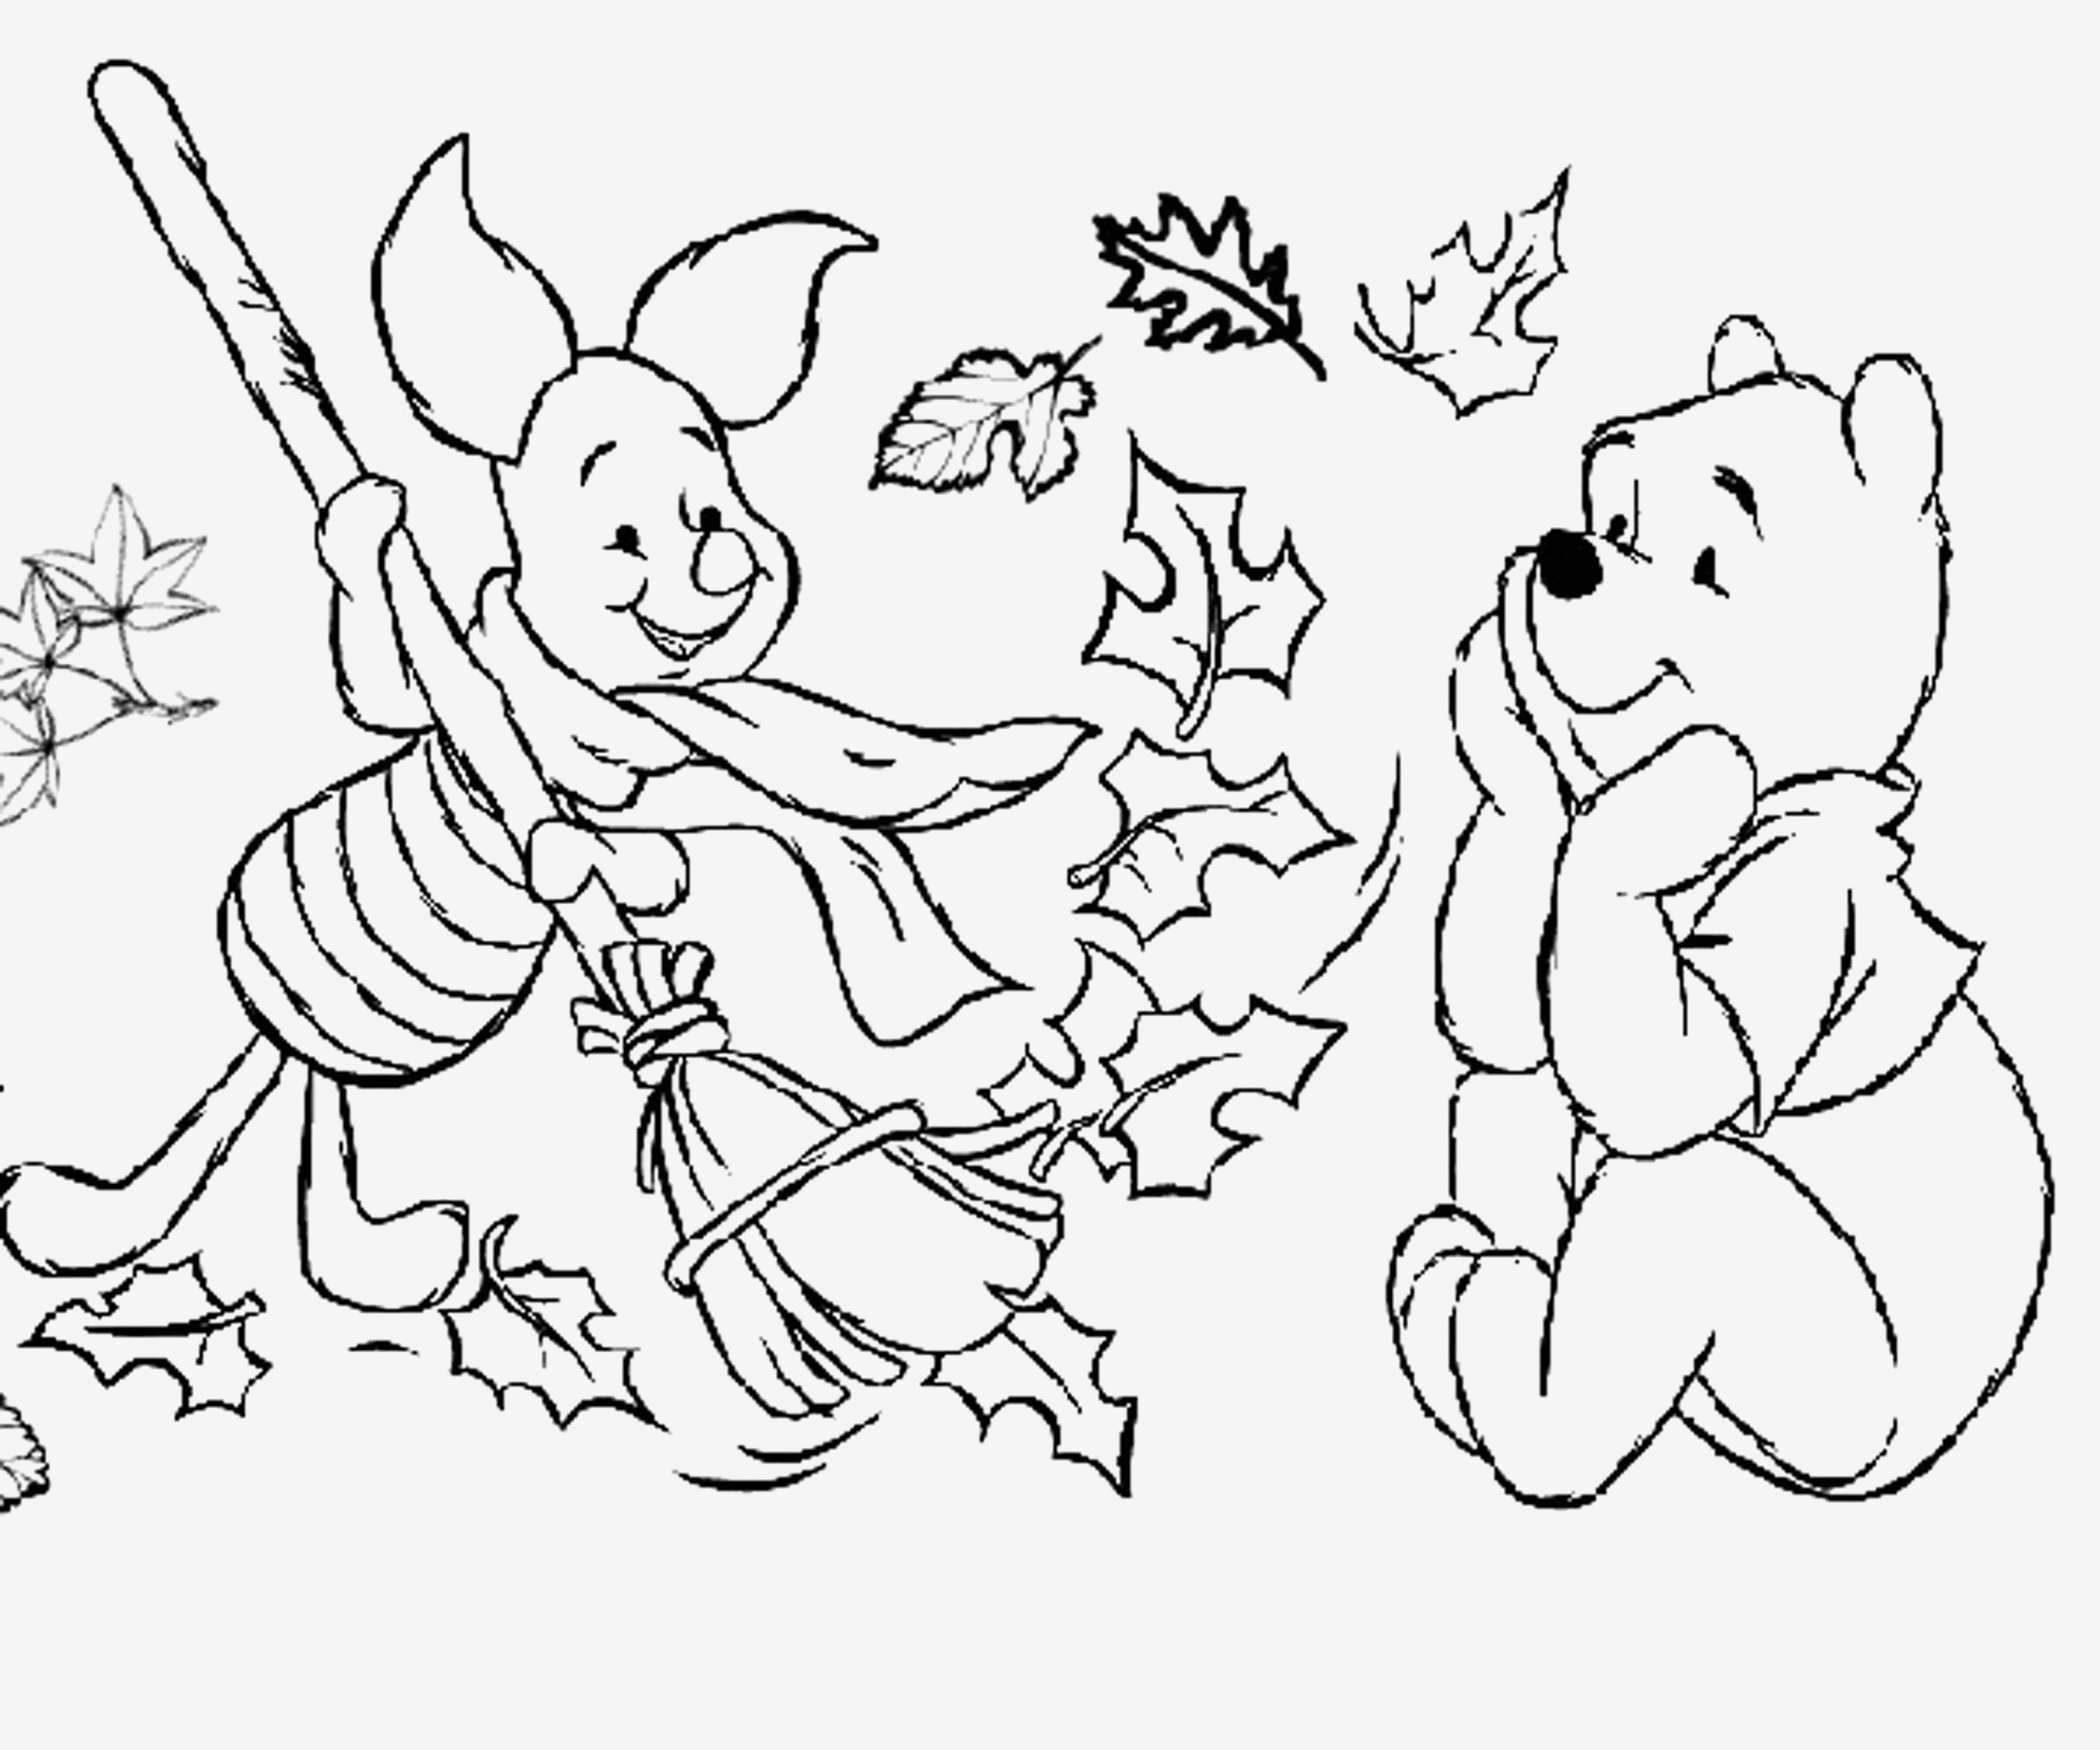 coloring pages kids.com Collection-Easy Adult Coloring Pages Free Print Simple Adult Coloring Pages Elegant Best Coloring Page Adult Od Kids 6-k